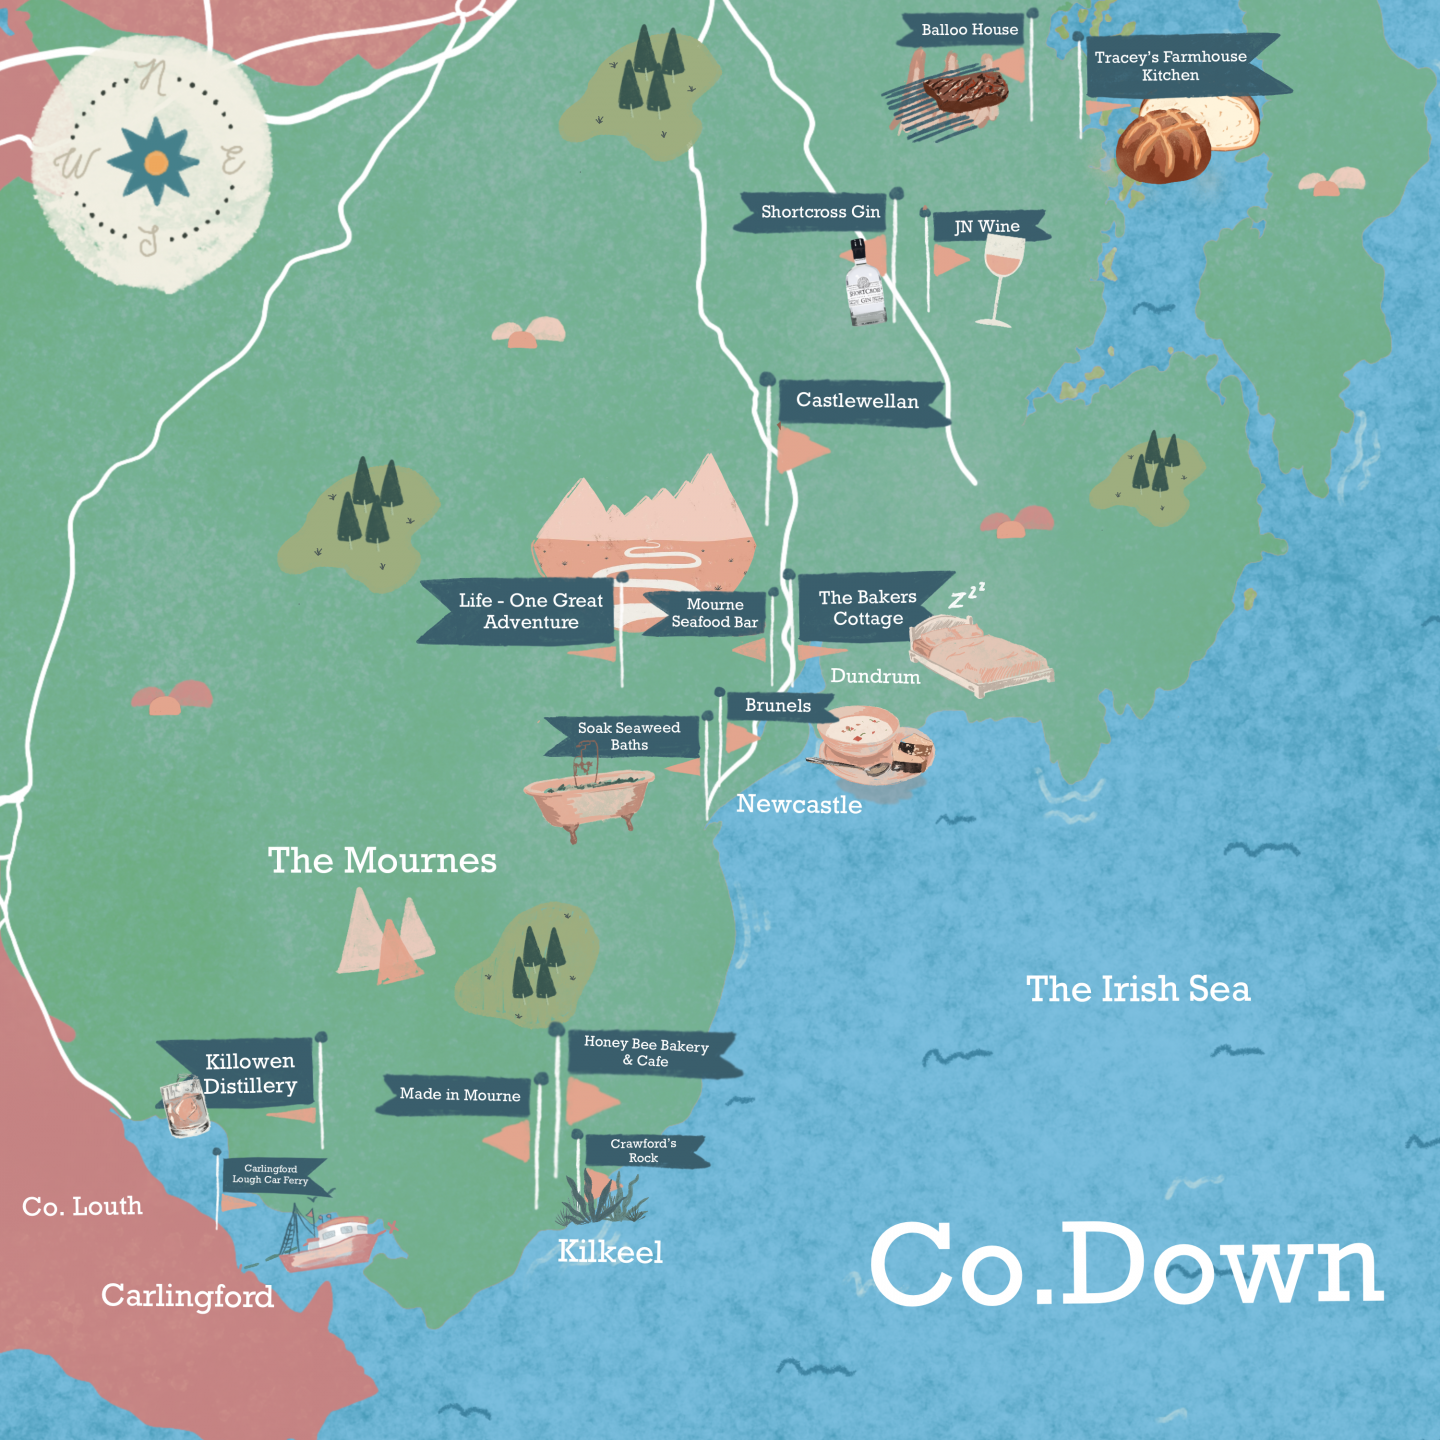 Illustrated County Down map